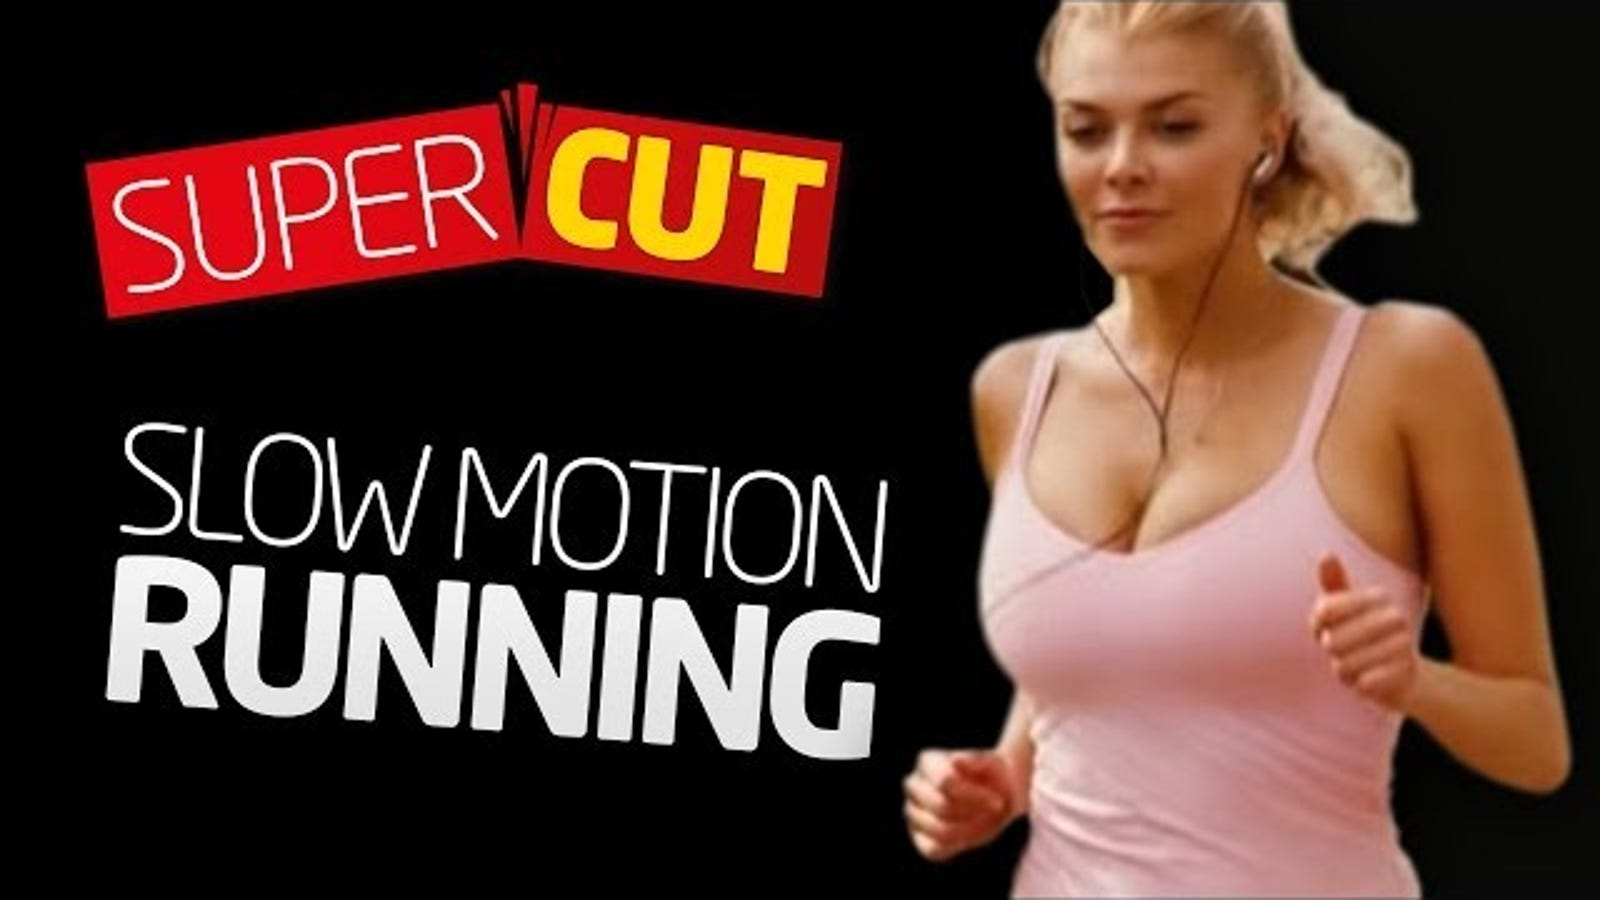 This Supercut Proves That All Running Should Be In Slow Motion